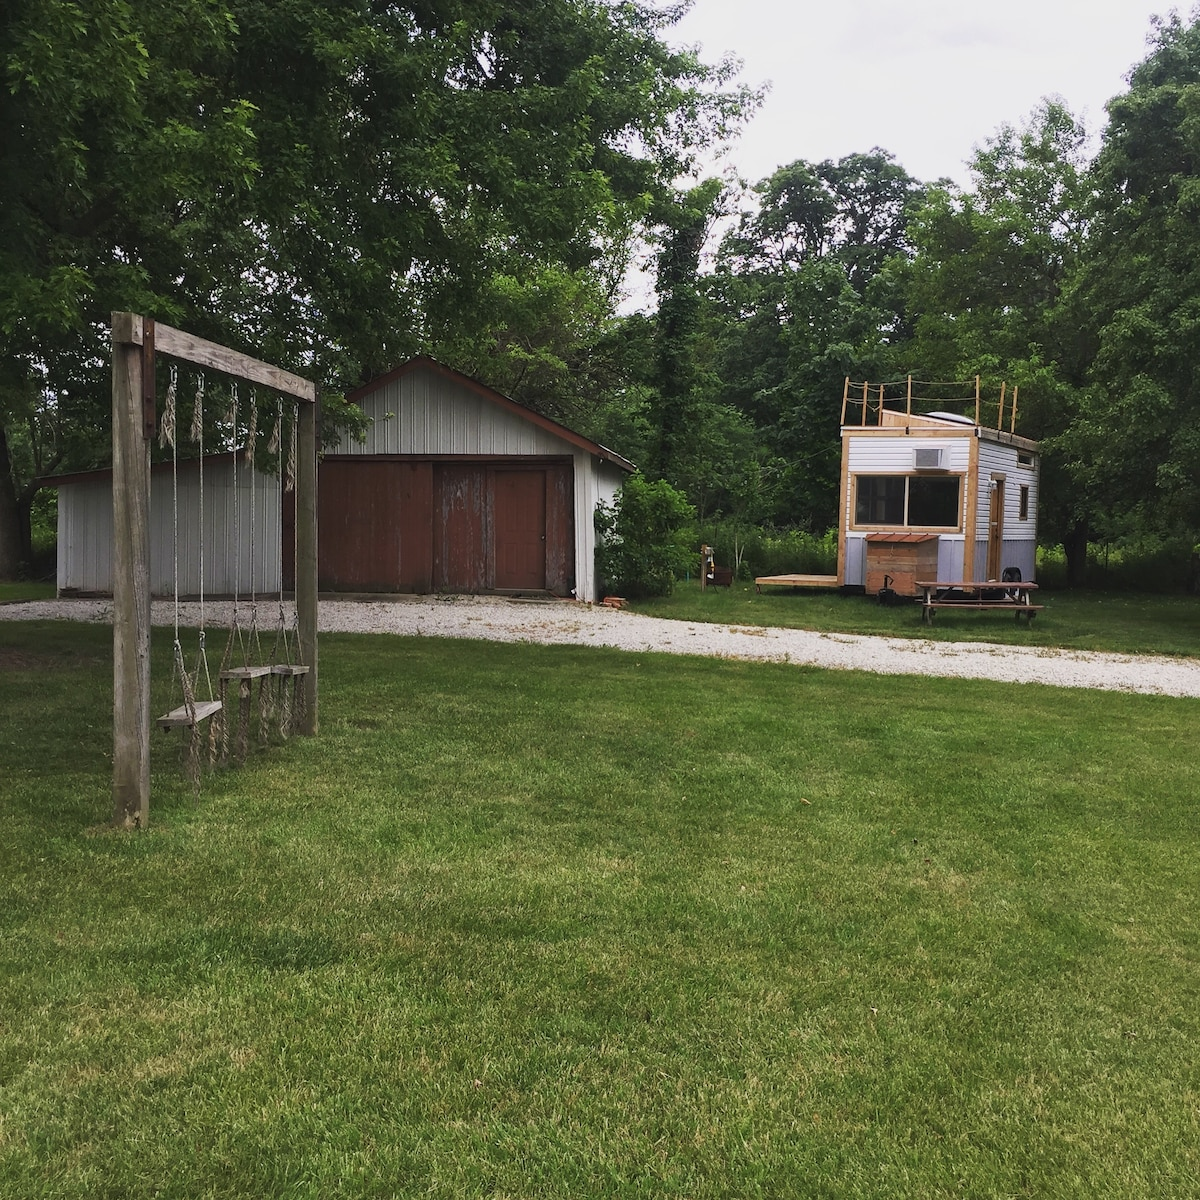 Two Deck Indianapolis Tiny House Campers Rvs For Rent In